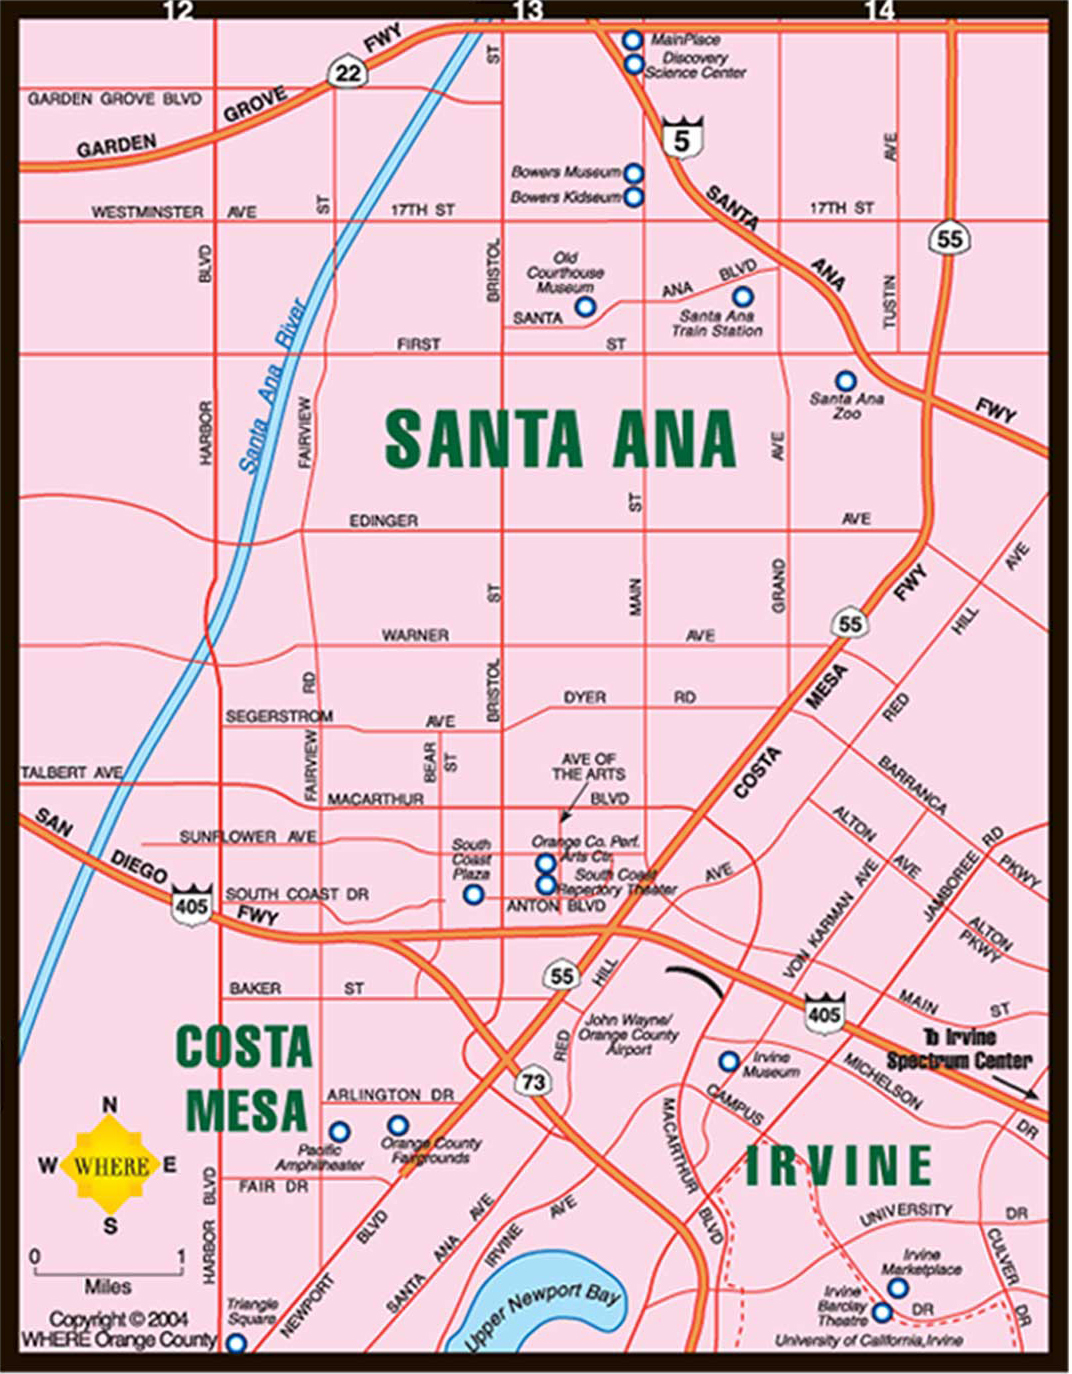 Santa Ana Map Map of Costa Mesa, Irvine, Santa Ana